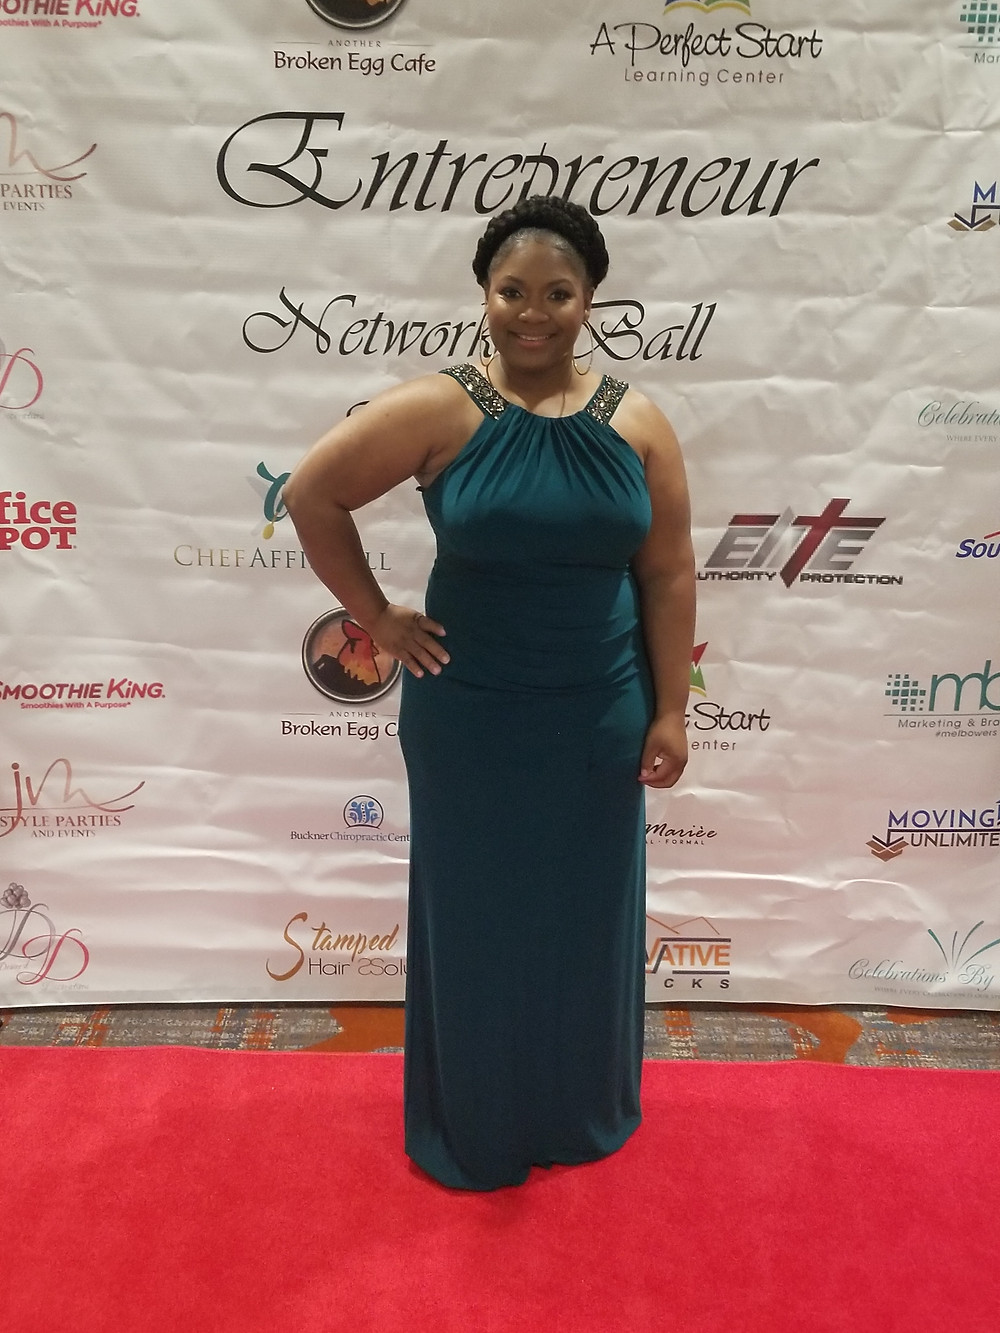 #ENB2018 Entrepreneur Networking Ball 2018